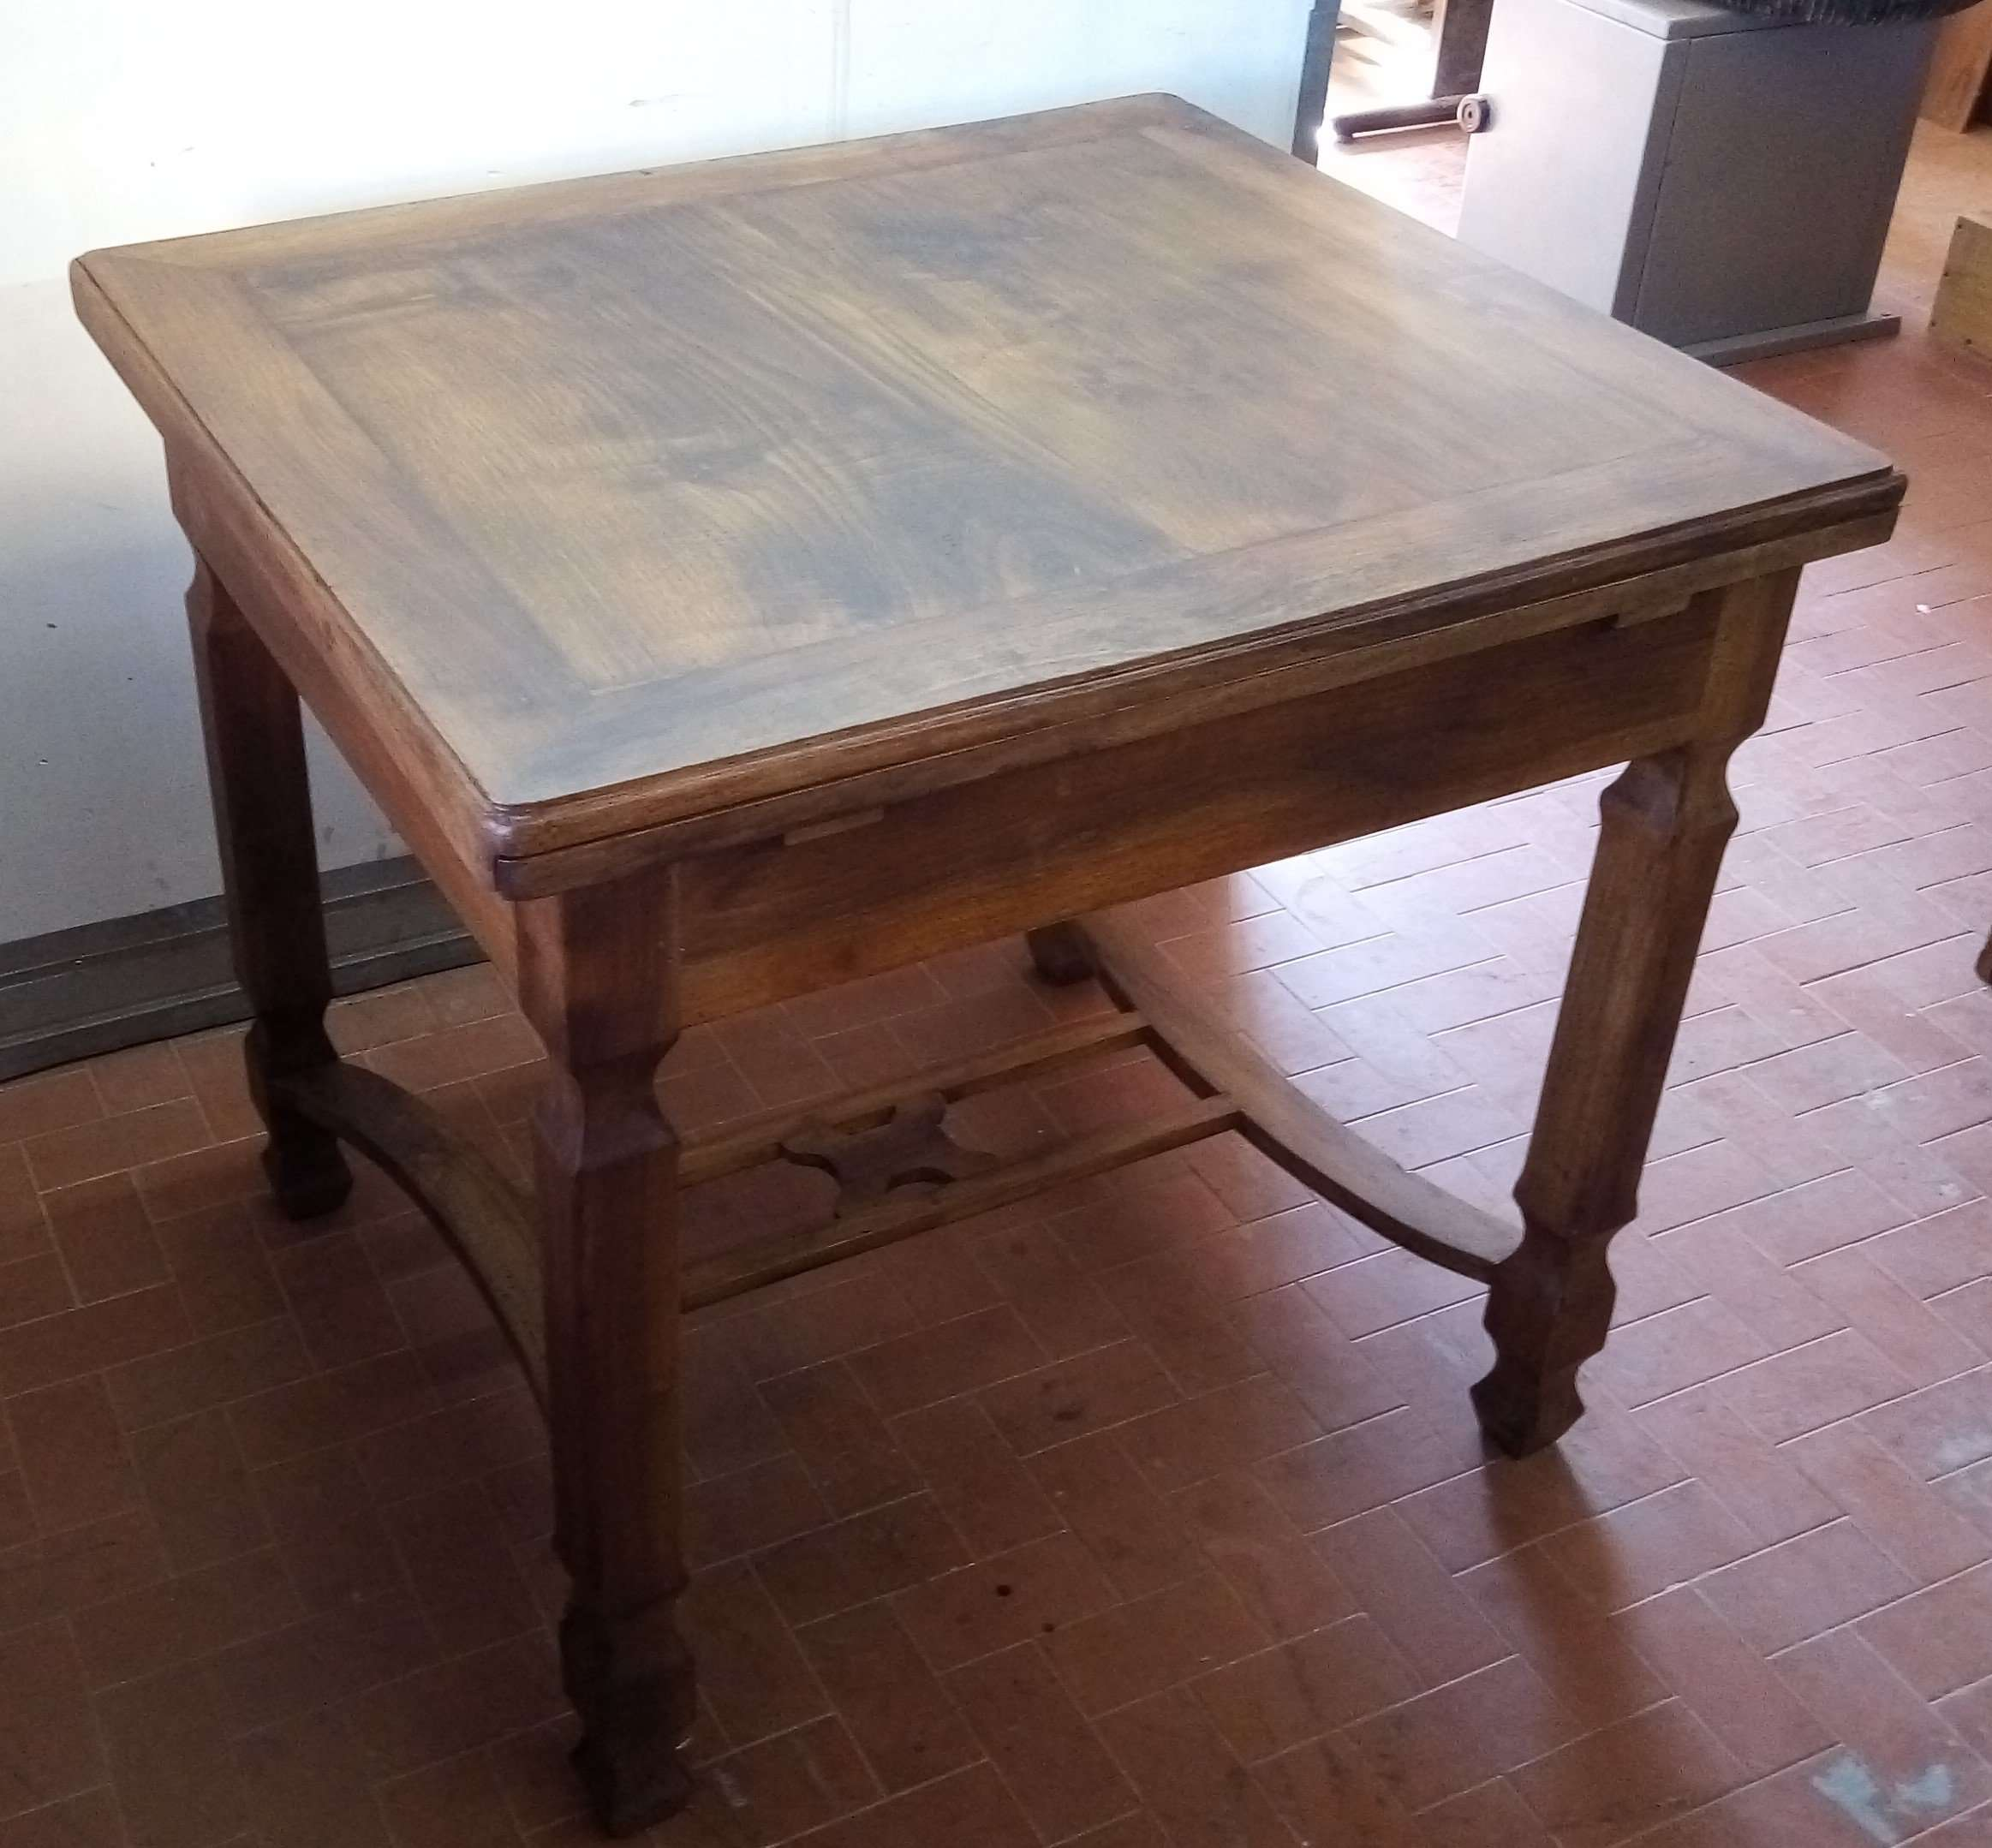 Restyling walnut table reconstruction floor cords extensions chestnut Sant'Arsenio Salerno